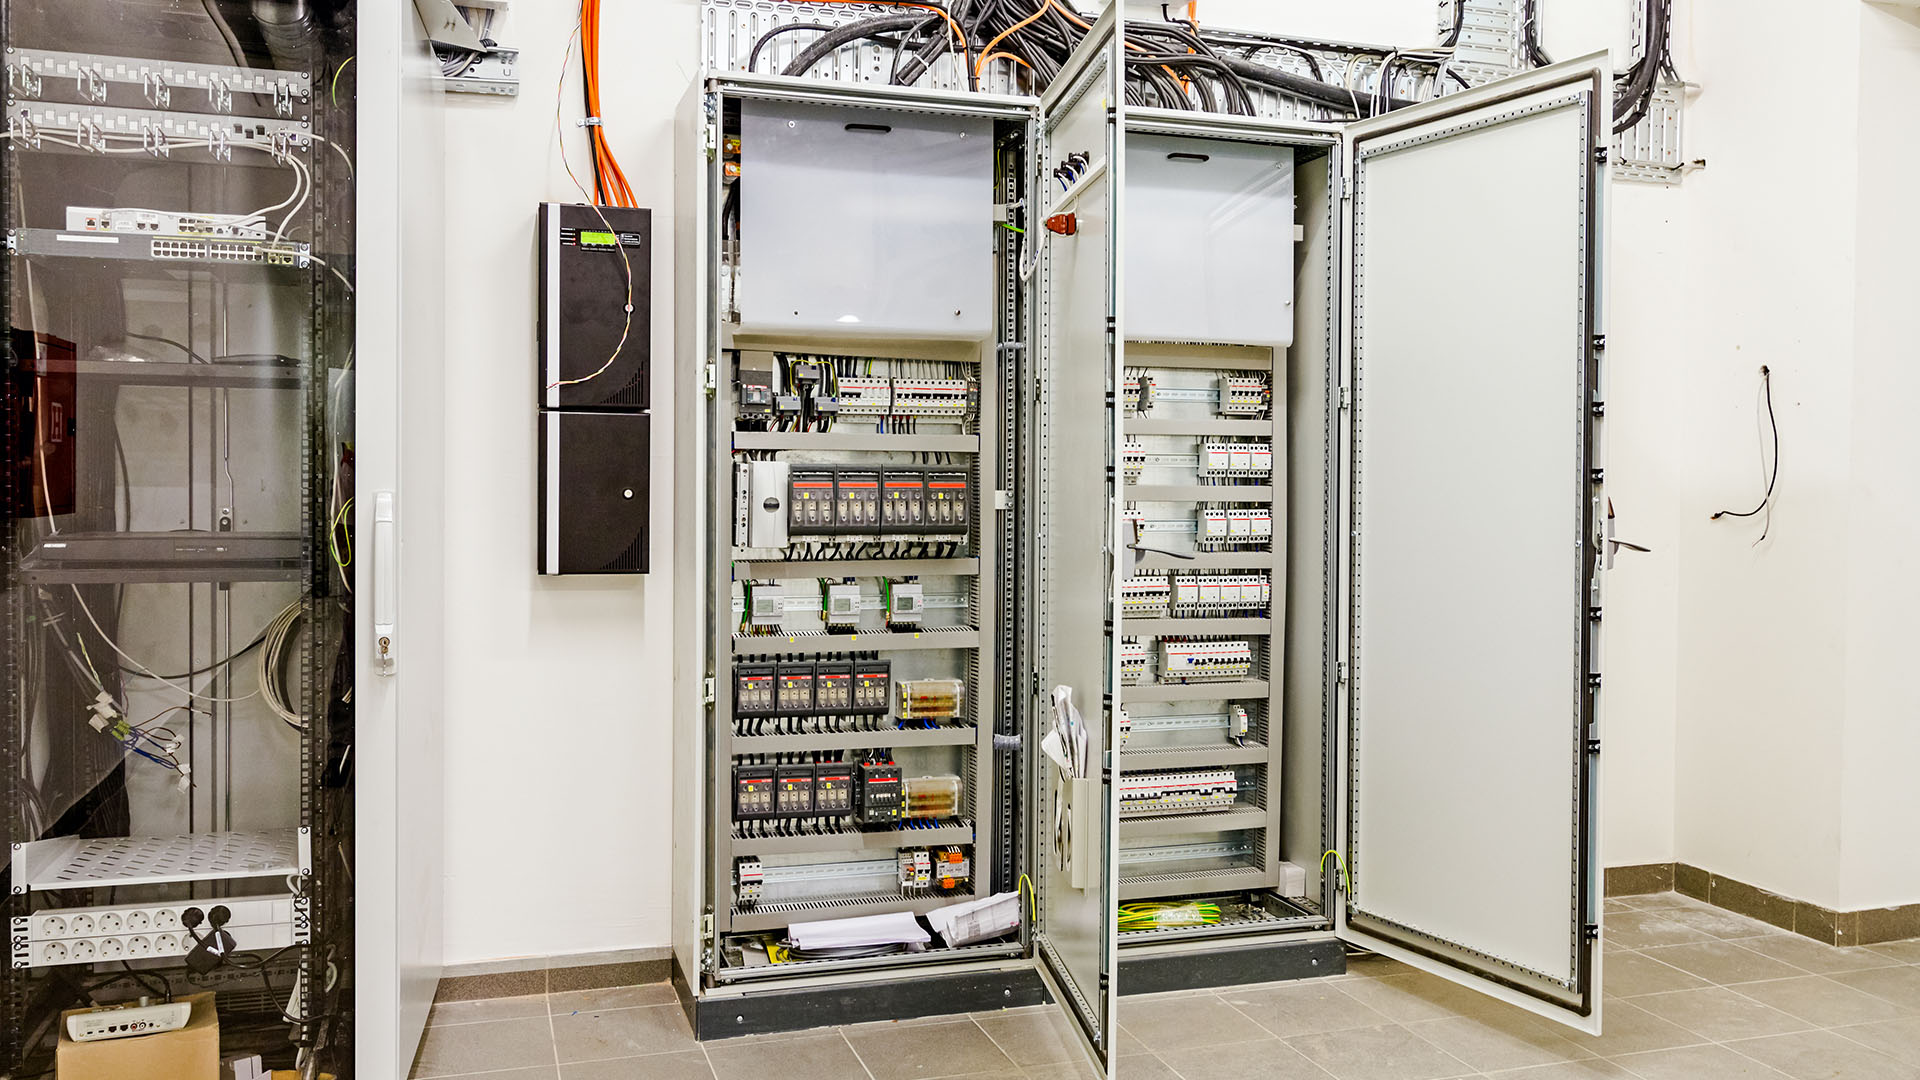 image-switchgear3